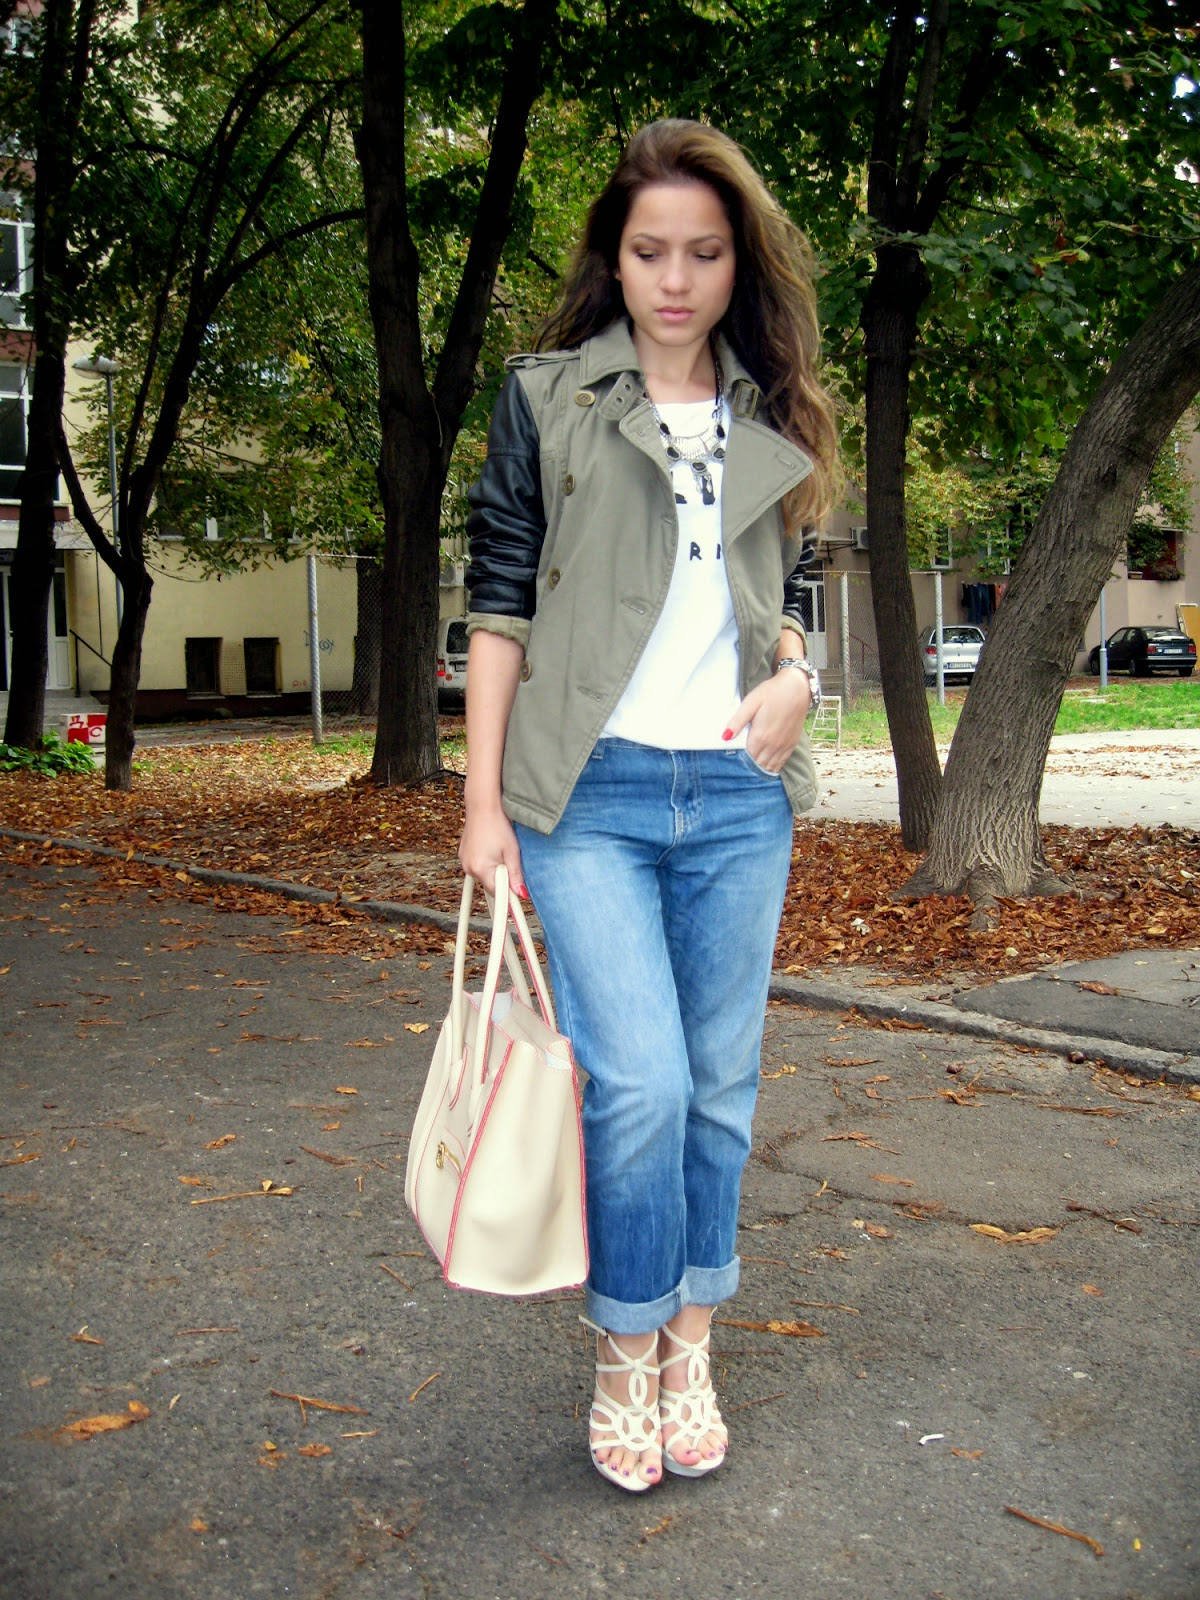 outfit, celine t shirt, celine inspired knockoff beige boston tote bag, beige sandals, boyfriend jeans, military jacket, jacket with black faux leather sleeves, statement necklace